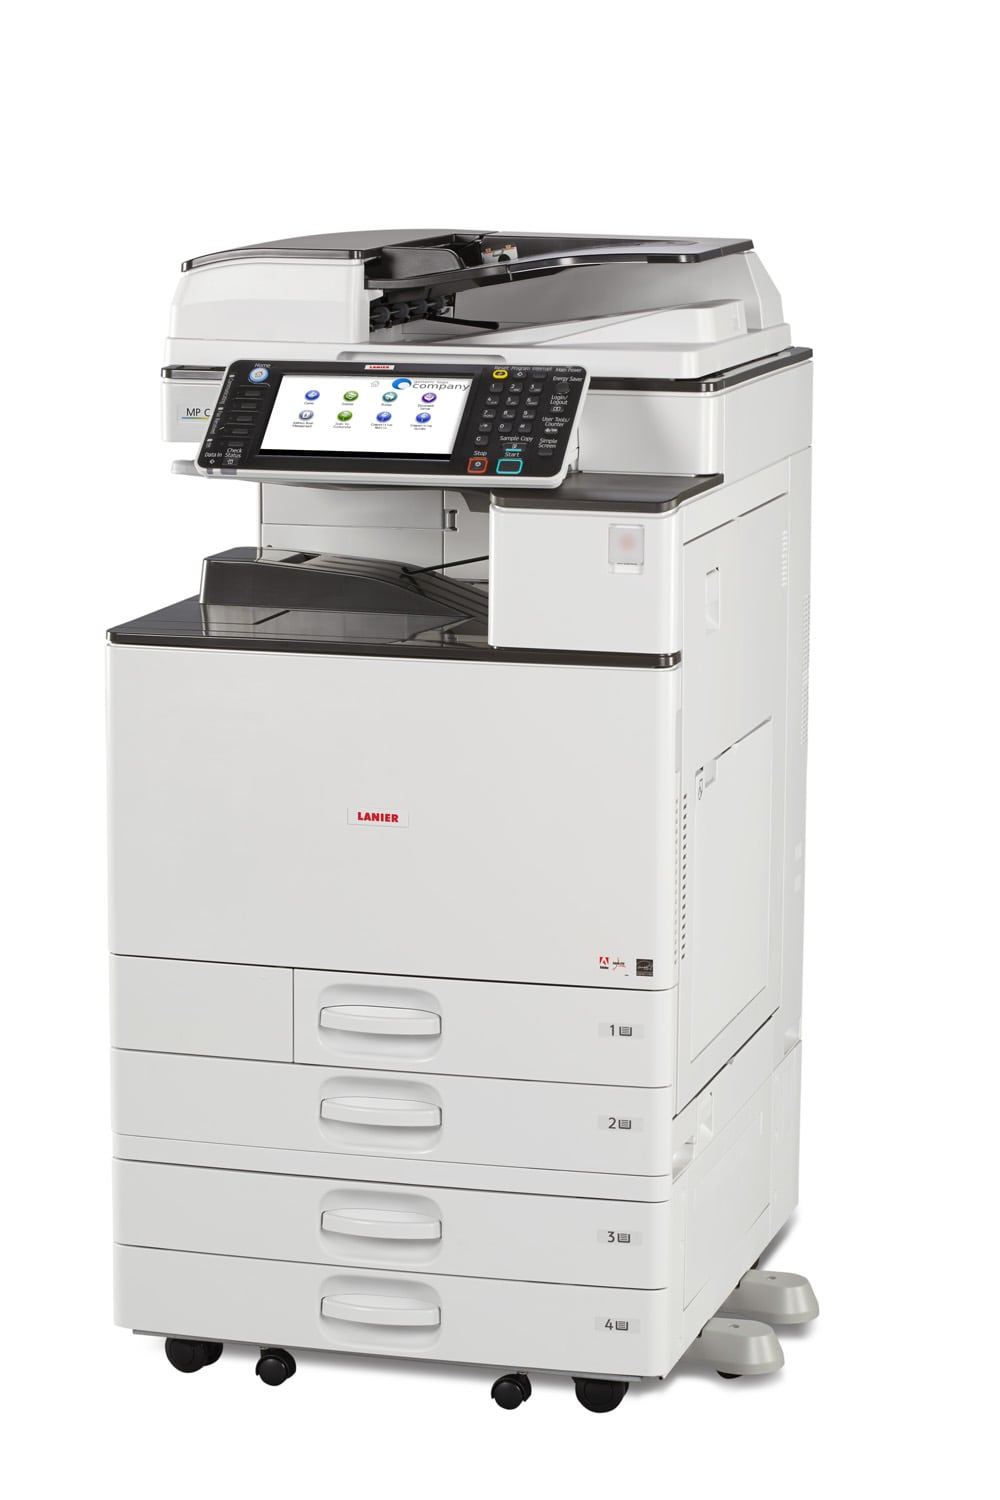 Lanier MPC2003 colour multifunction printer